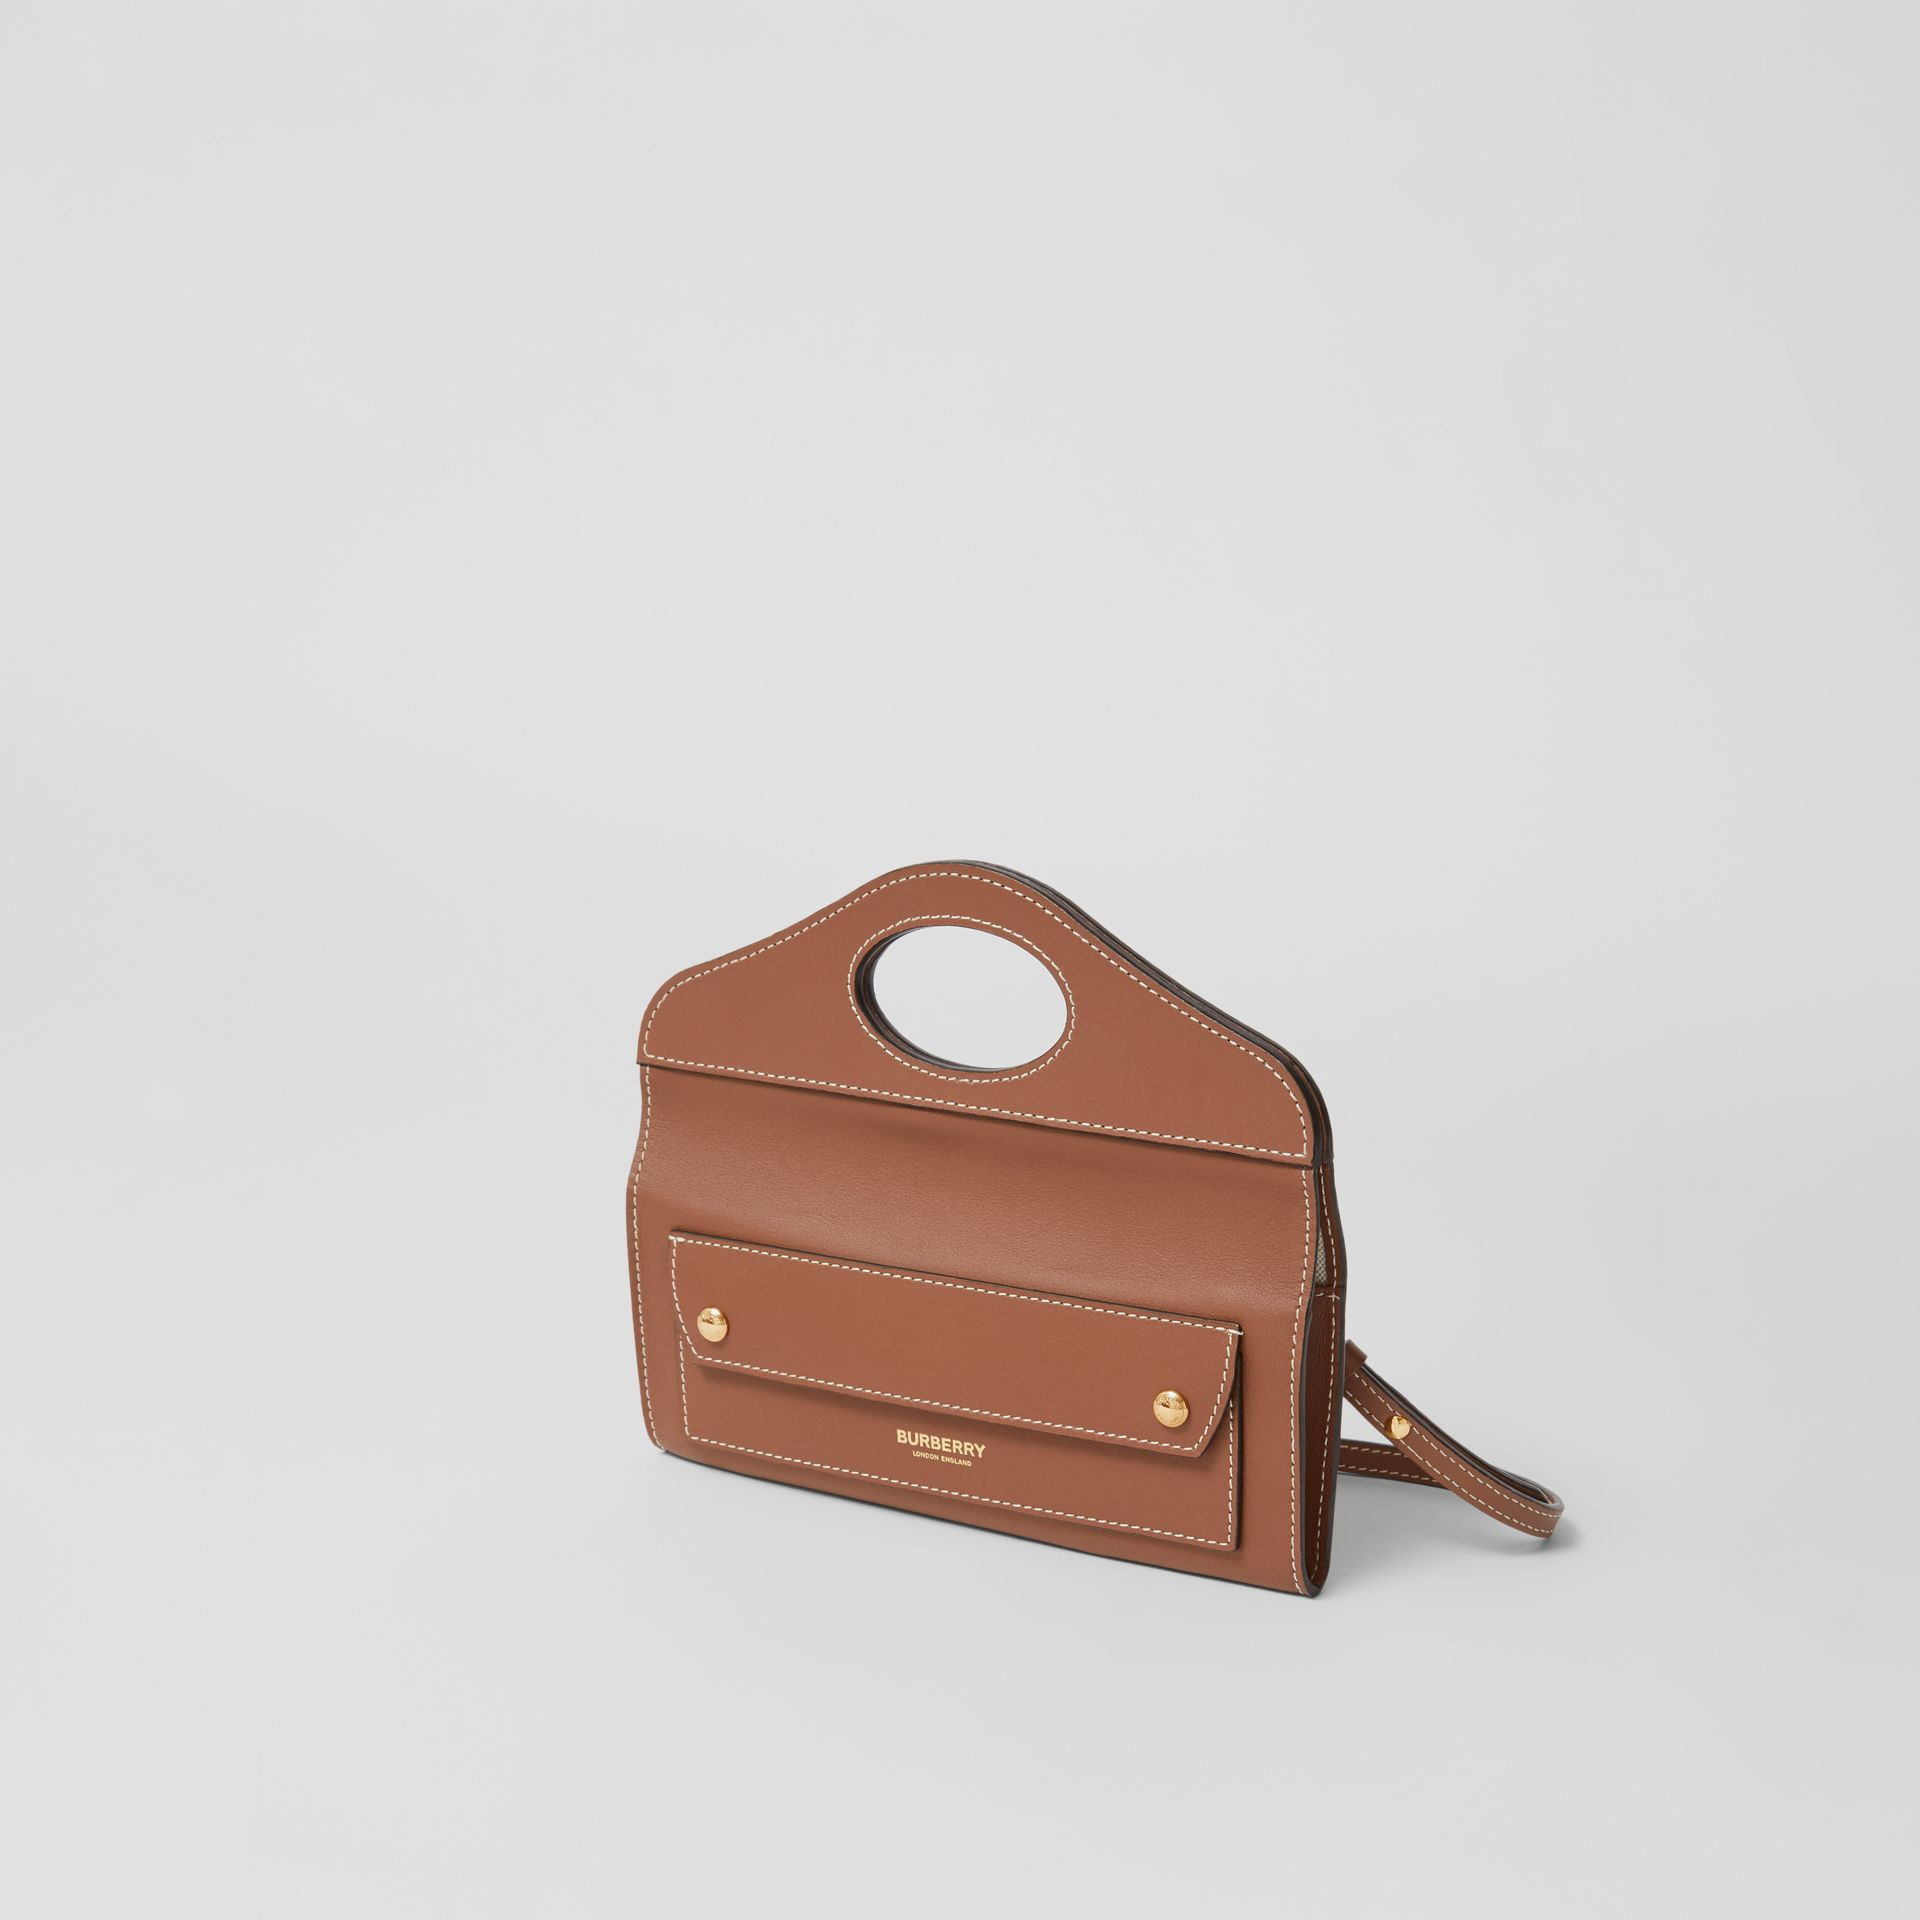 Mini Topstitched Lambskin Pocket Clutch in Malt Brown - Women | Burberry - gallery image 3